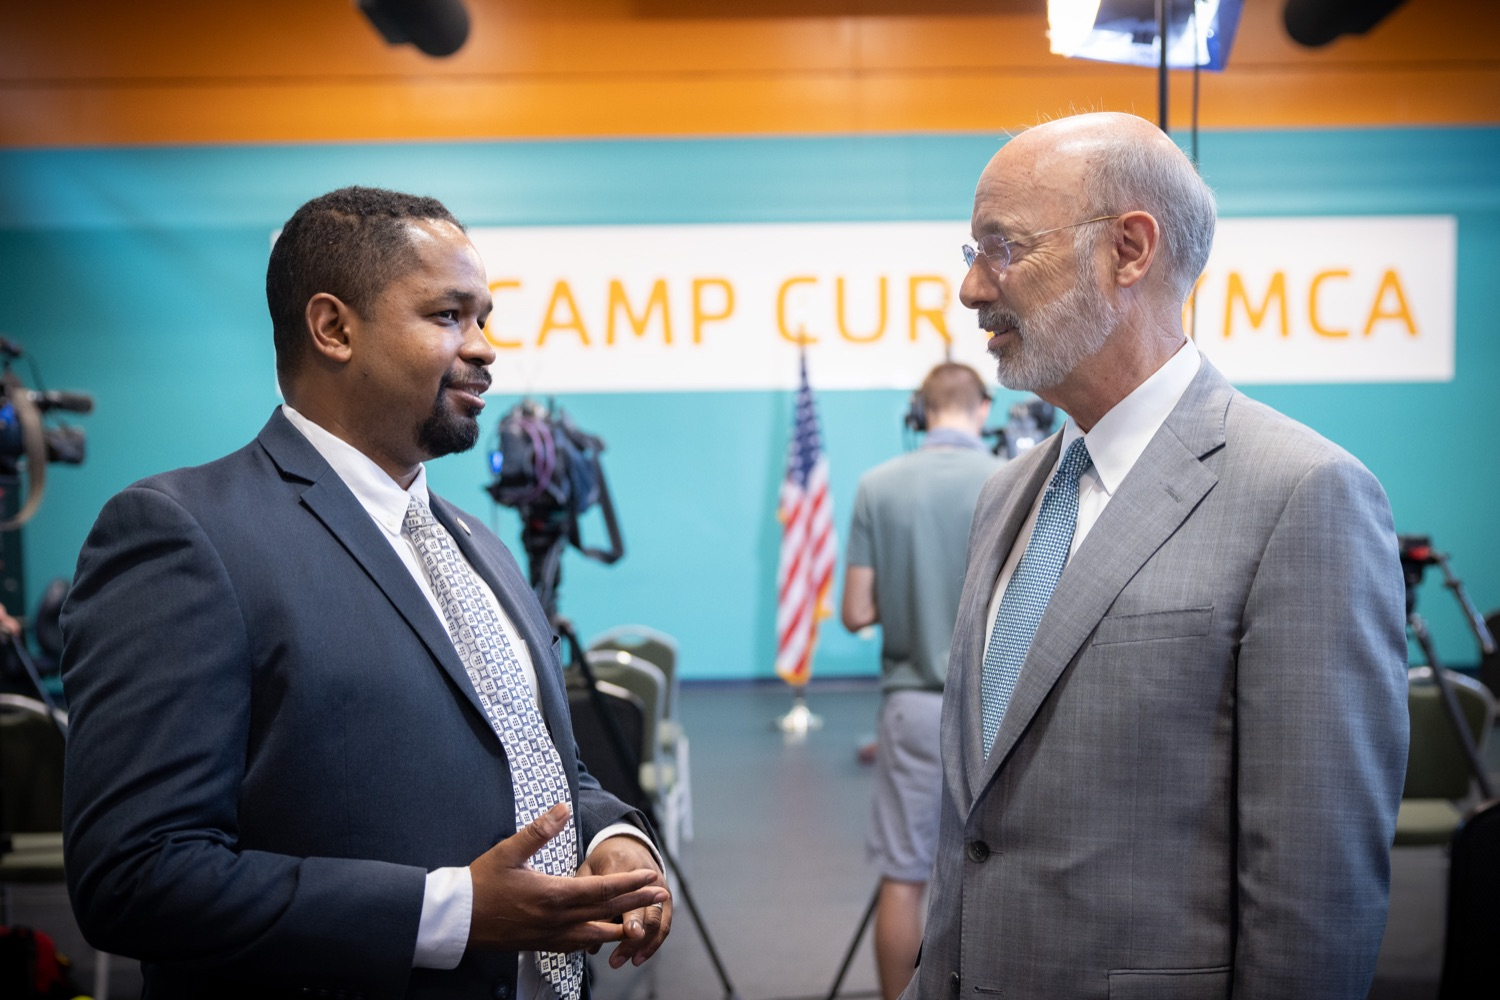 """<a href=""""https://filesource.wostreaming.net/commonwealthofpa/photo/18815_gov_voterRights_dz_012.jpg"""" target=""""_blank"""">⇣Download Photo<br></a>Senate State Government Committee Democratic Chairman Senator Sharif Street speaking with Pennsylvania Governor Tom Wolf.With some politicians spreading lies about our elections to divide us, Governor Tom Wolf today vowed to protect the freedom to vote and oppose legislation that would create barriers to voting and silence the voices of some Pennsylvanians. These are the same lies that led directly to the appalling assault on our U.S. Capitol and our democracy on January 6, and now, just a few short months later, the same people who fomented, encouraged, and joined that mob are again emerging to undermine the fabric of our nation.   Harrisburg, PA  June 9, 2021"""